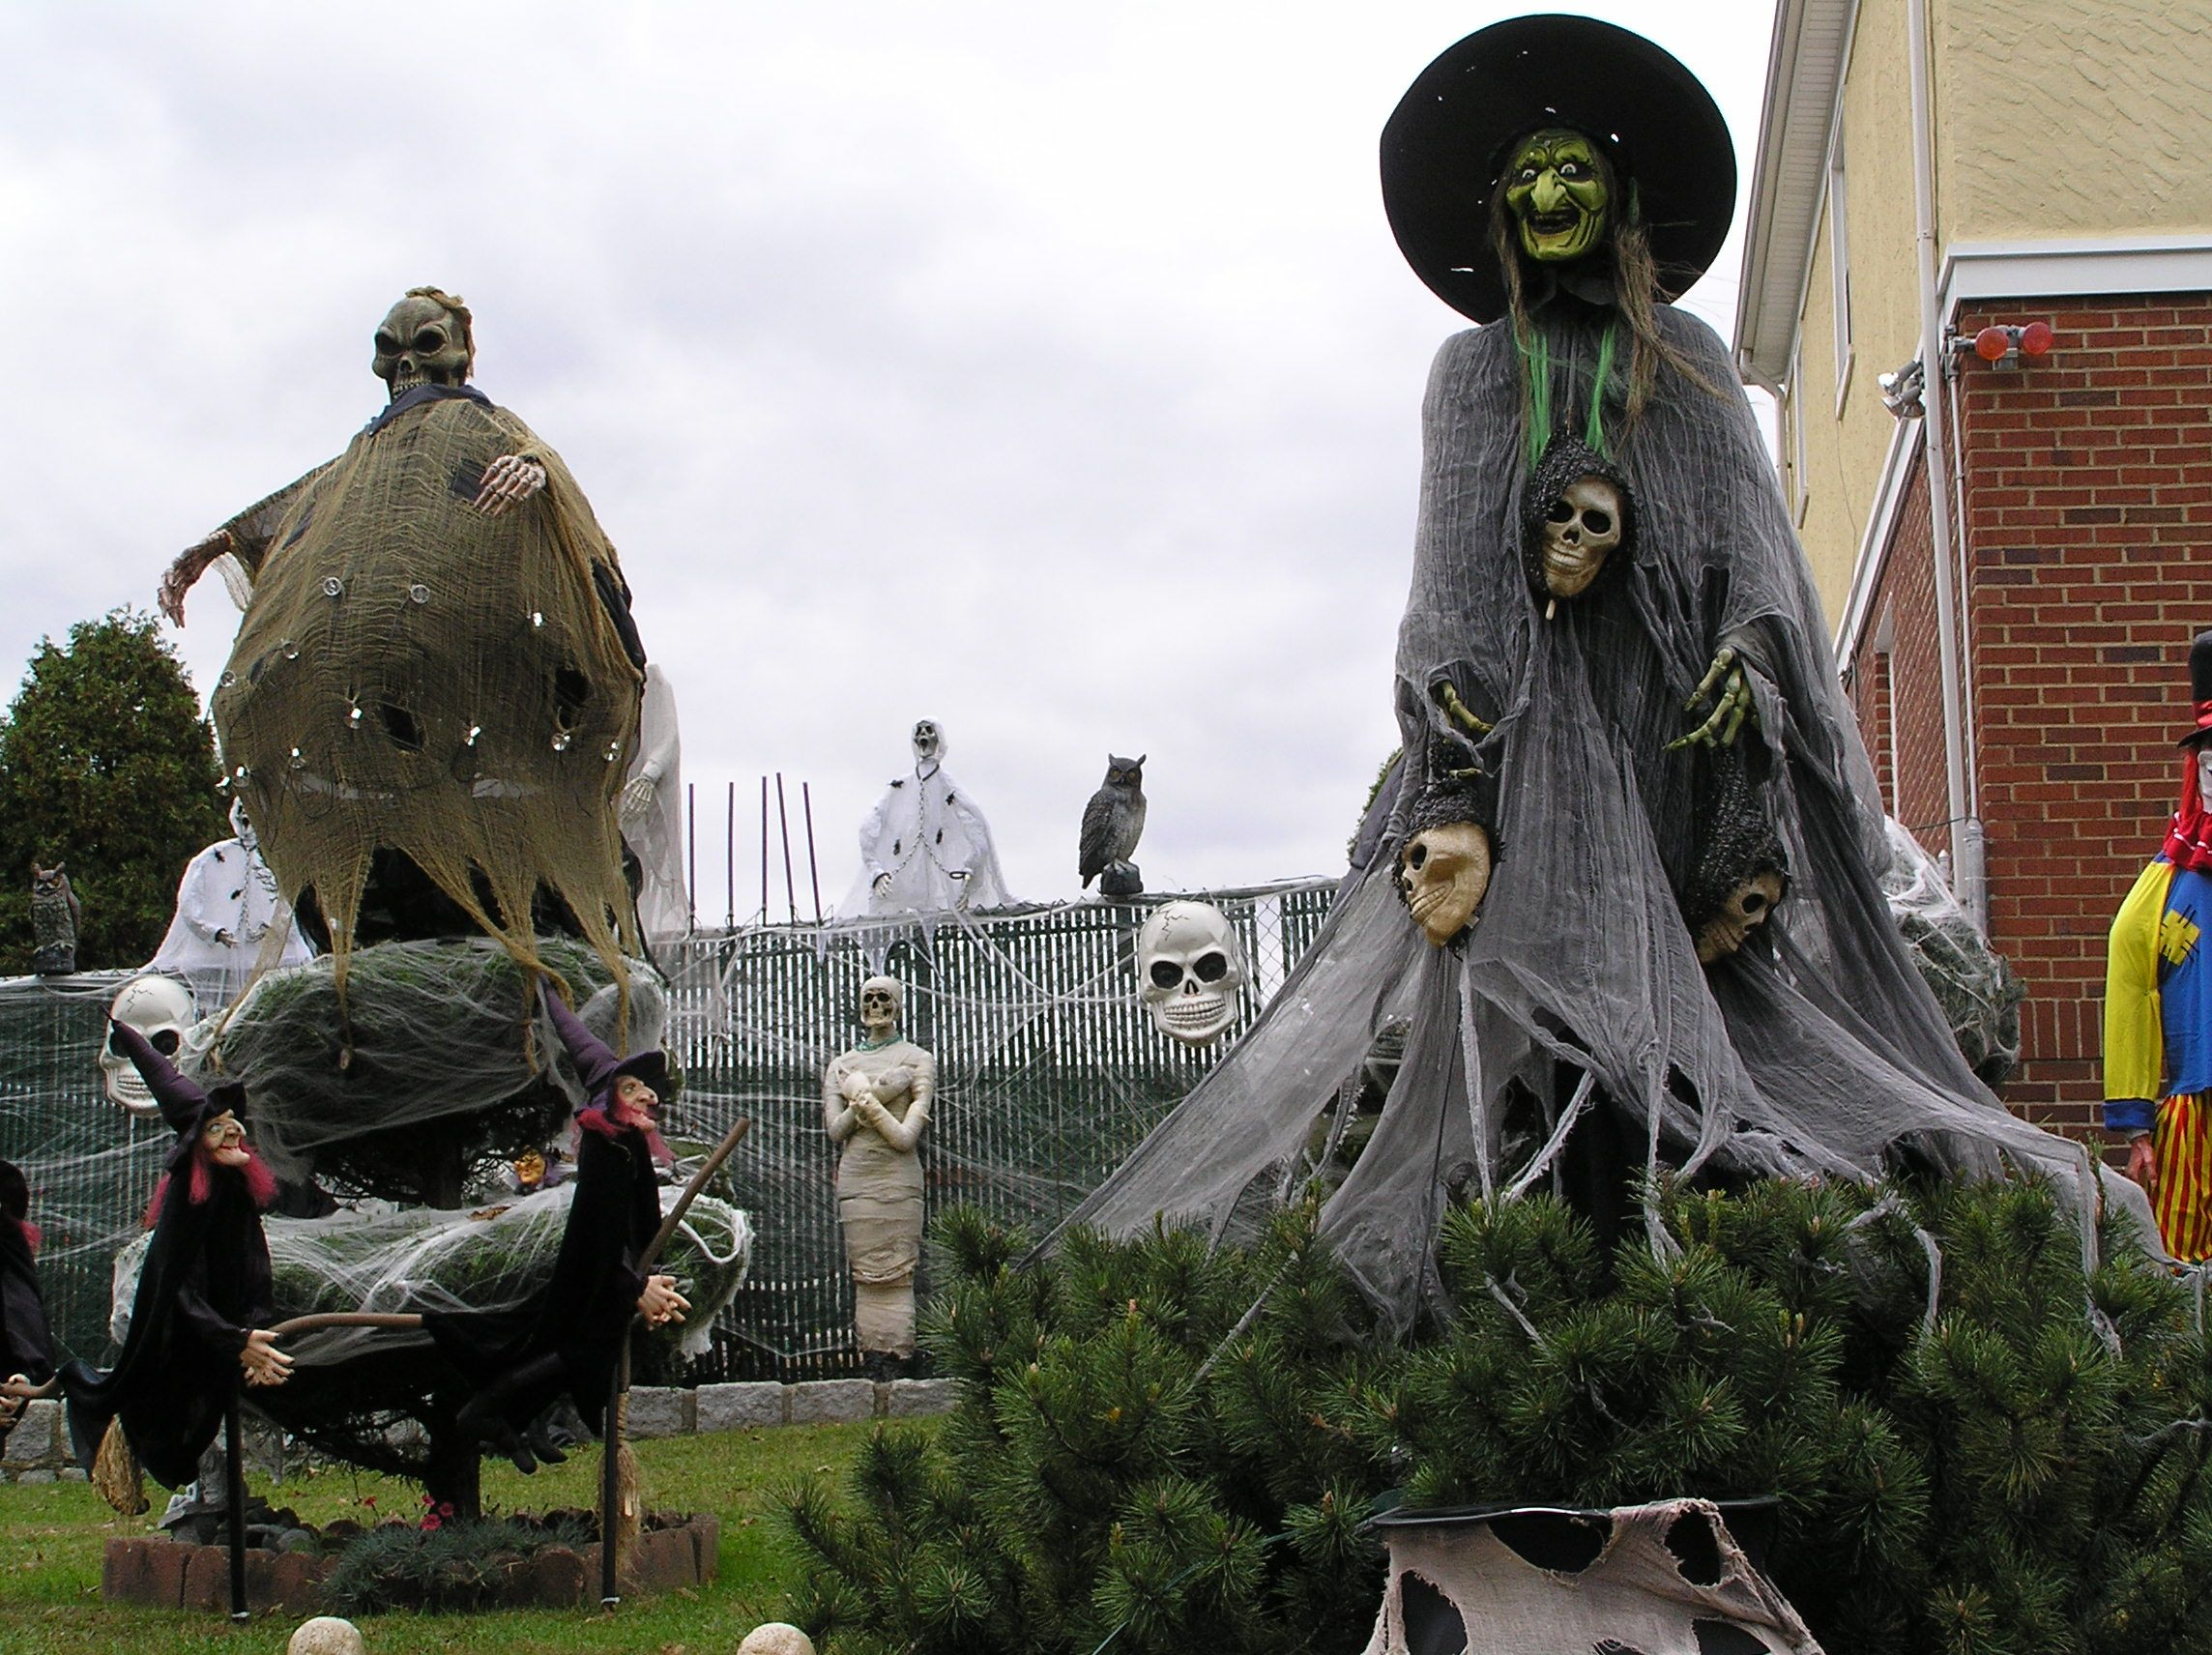 images of halloween google search halloween pinterest at halloween yards and public spaces may be decorated with traditionally macabre symbols including witches skeletons cobwebs and headstones